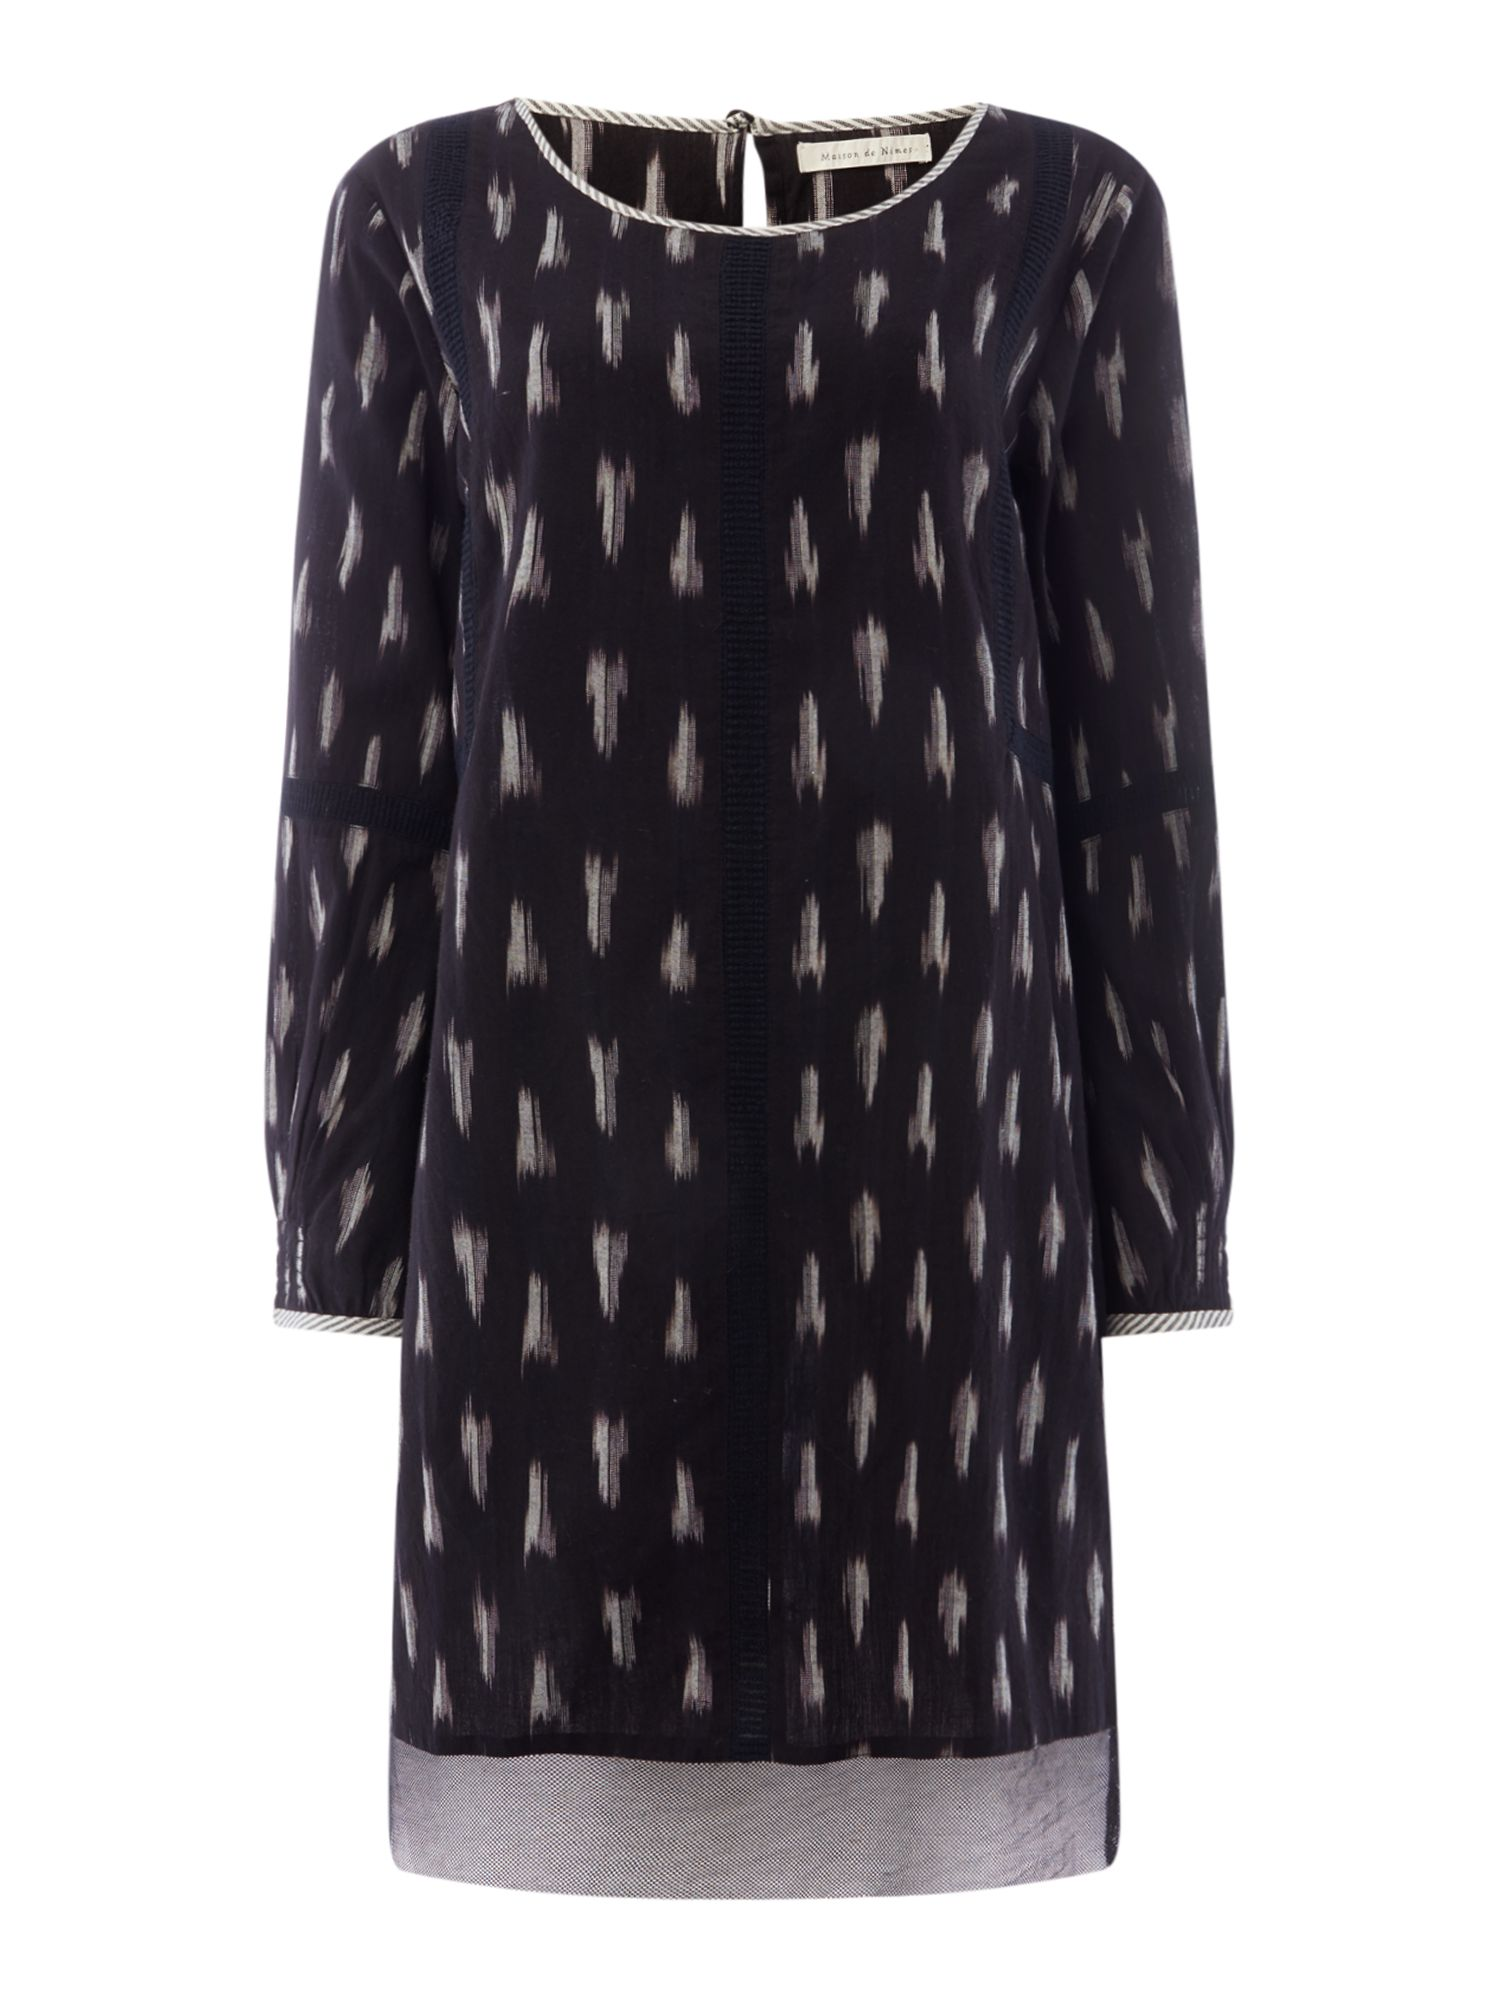 Maison De Nimes Ikat Peasant Dress, Black